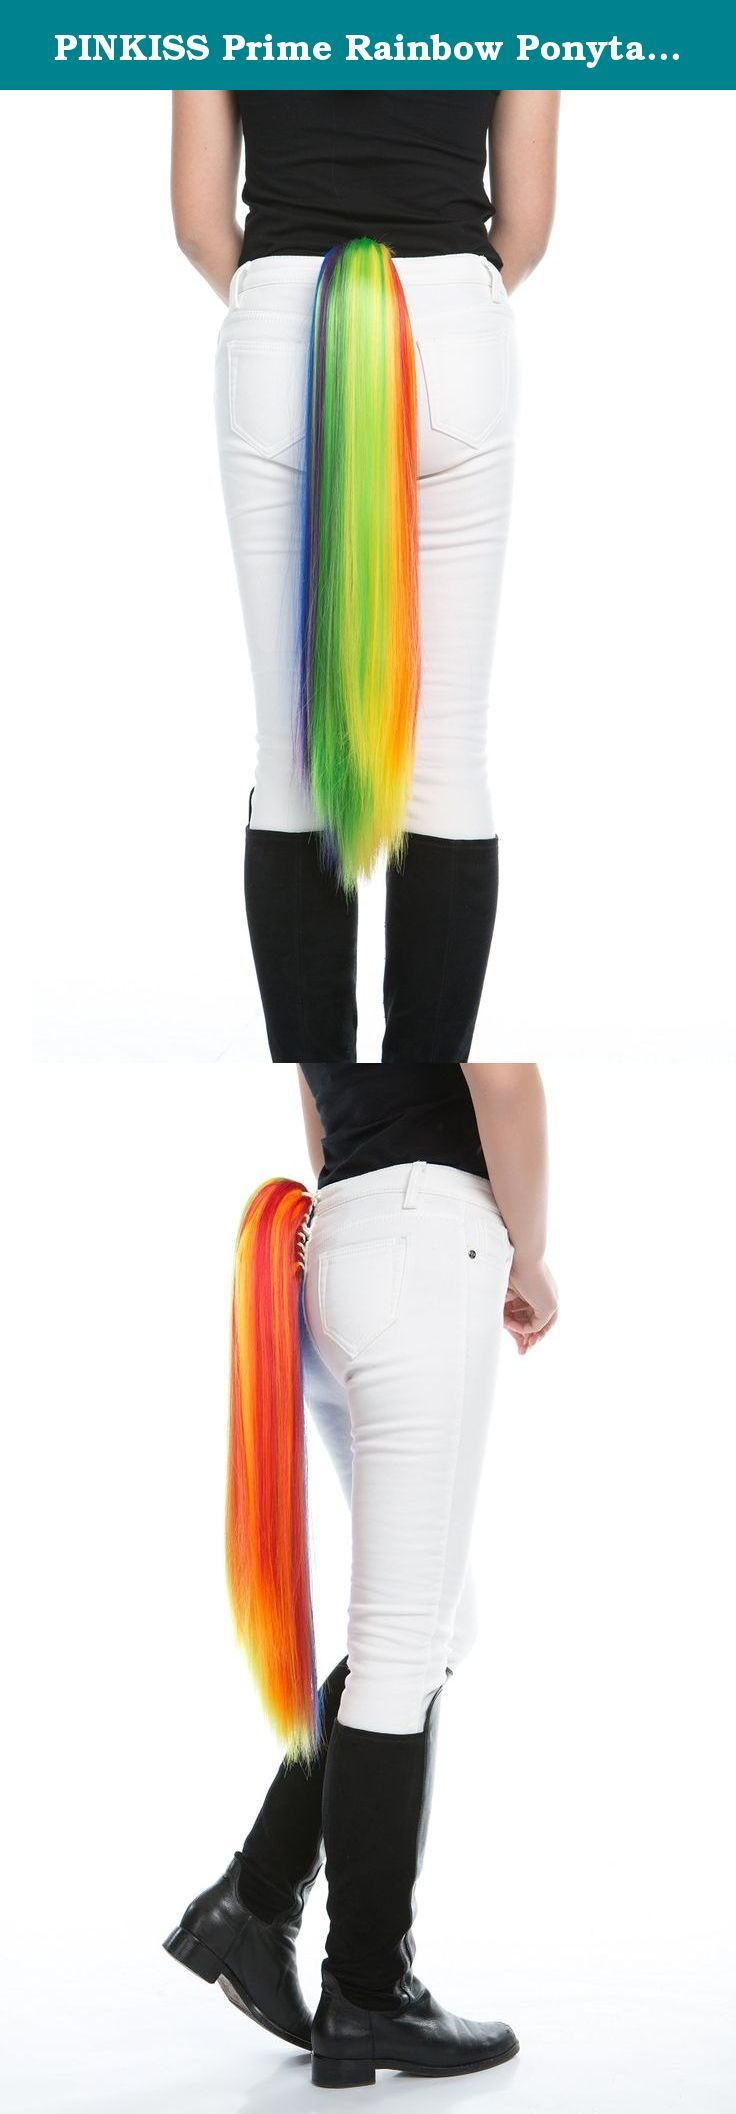 PINKISS Prime Rainbow Ponytail Costume Fashion Colorful Tail for Party Event with Large Clipper (Rainbow). High quality rainbow costume ponytail is made of Japanese synthetic fiber. Bright rainbow color attract more eyes to you. The ponytail is about 27 inch long, appropriate length for girls. With large clipper inside, it is firm even if you are dancing in the pool. Also best accessory for holiday, party and special event. Very easy to clean the wig by warm water and mild soap by hand....